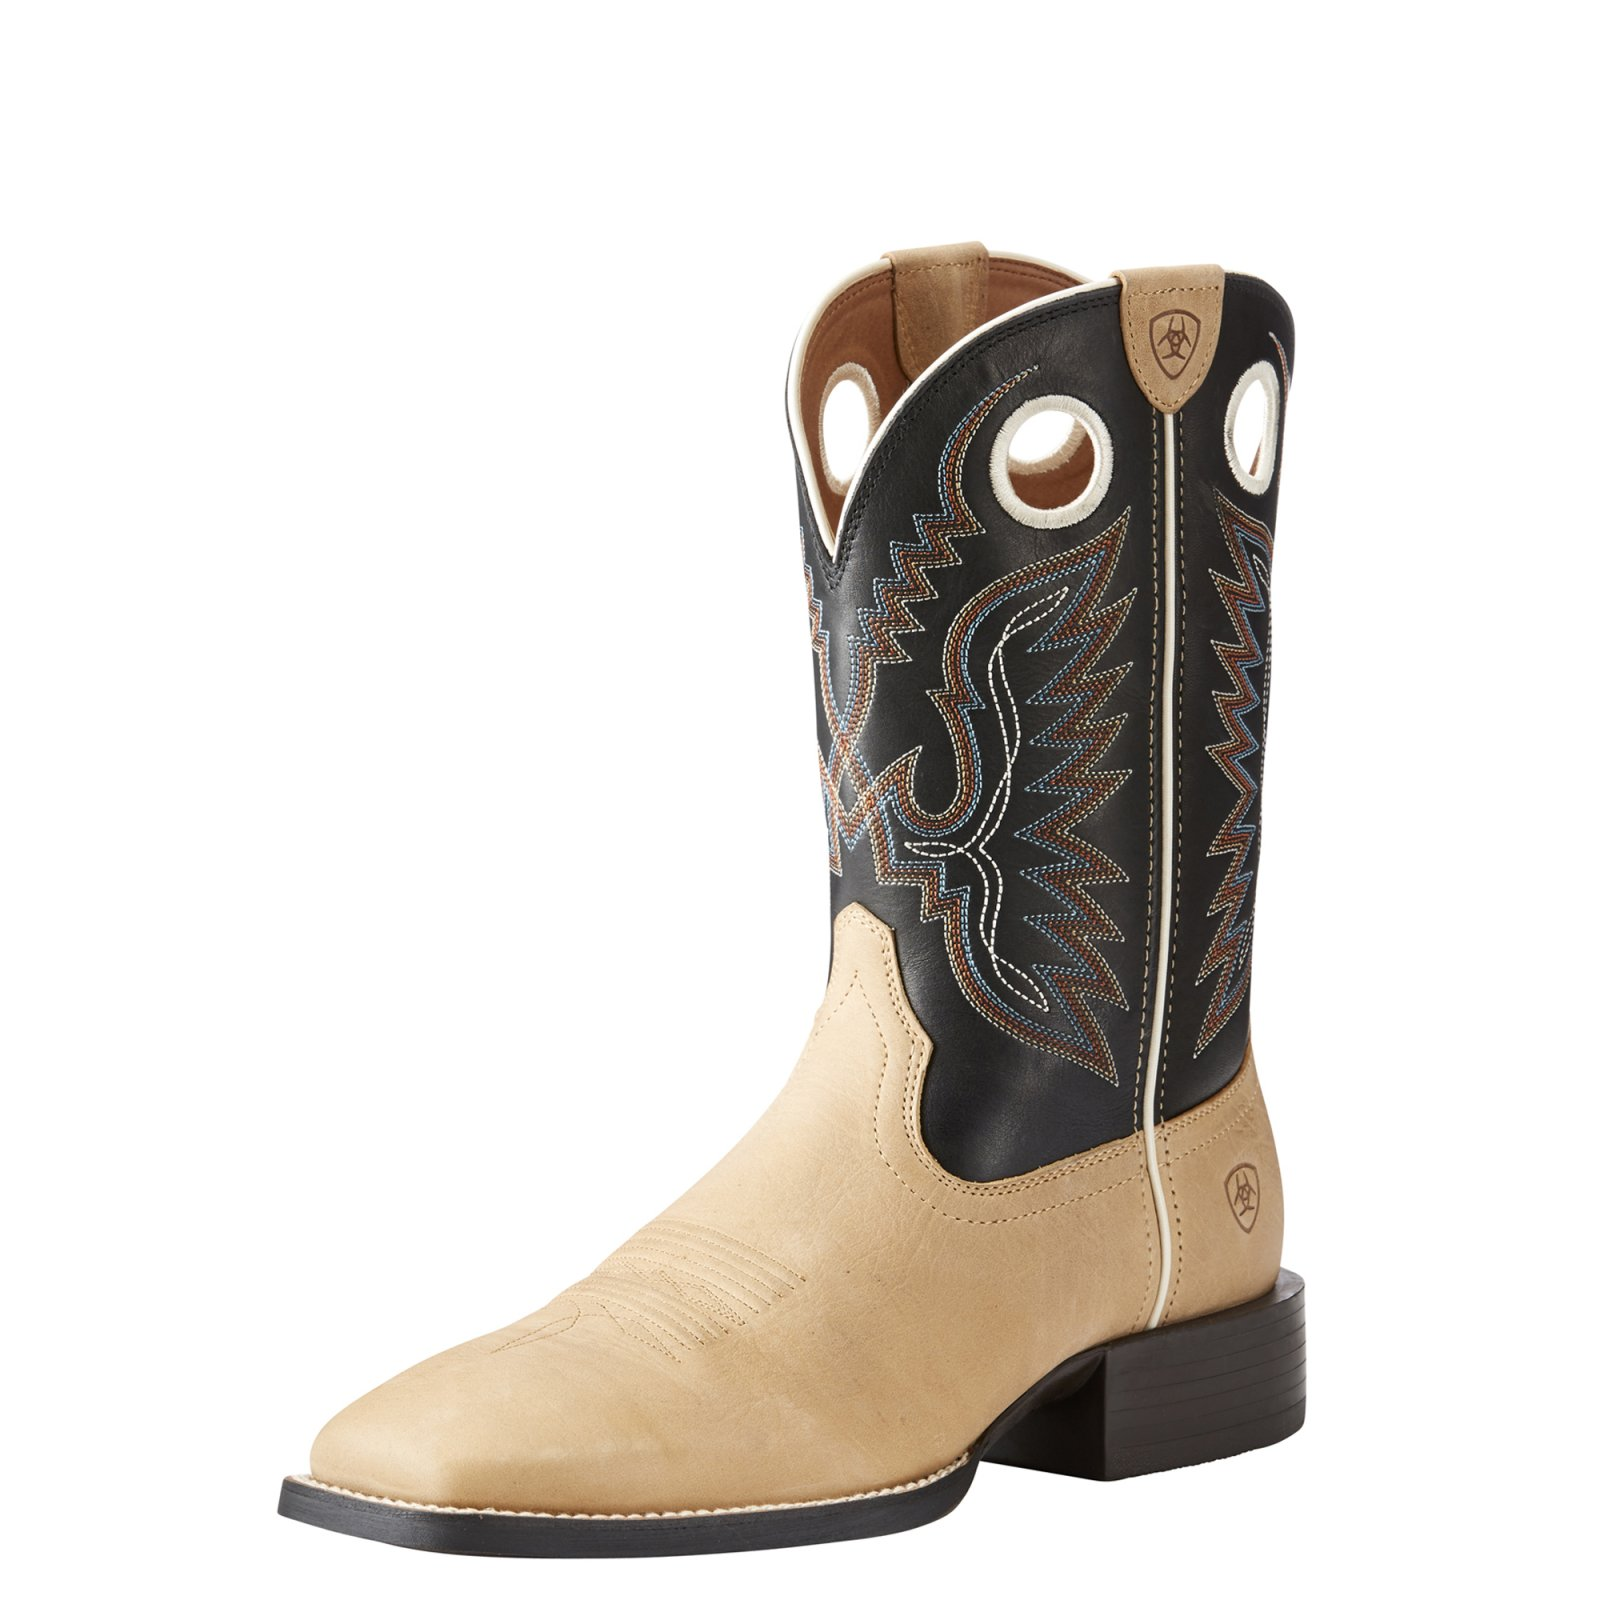 Men's Sport Ranger Boot from Ariat